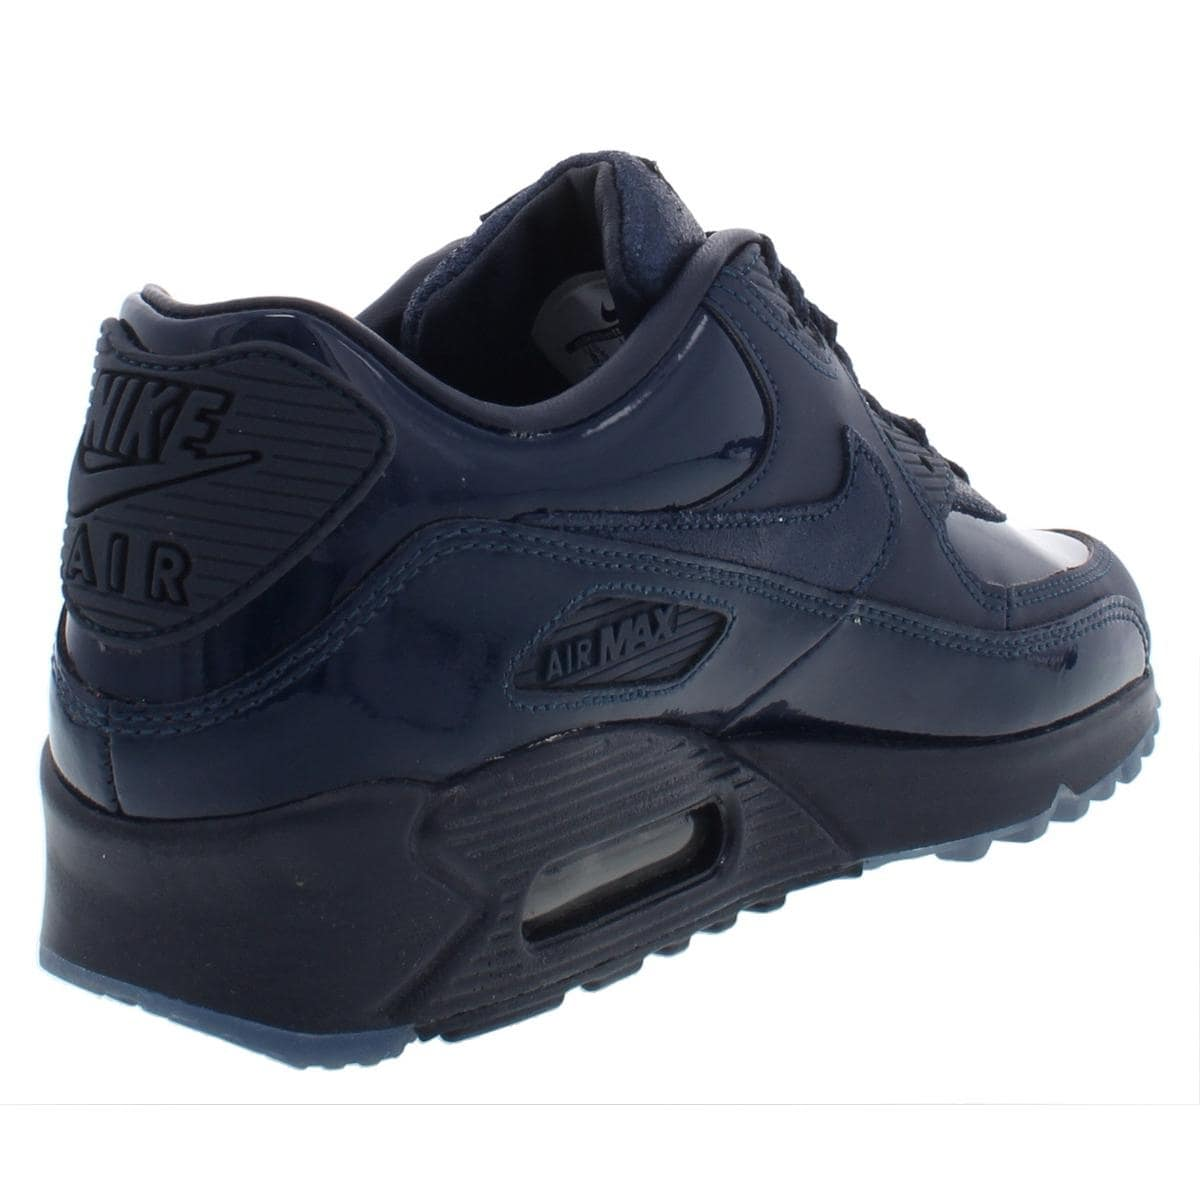 Nike Womens Air Max 90 Pedro Lourenco Hiking, Trail Shoes Padded Insole